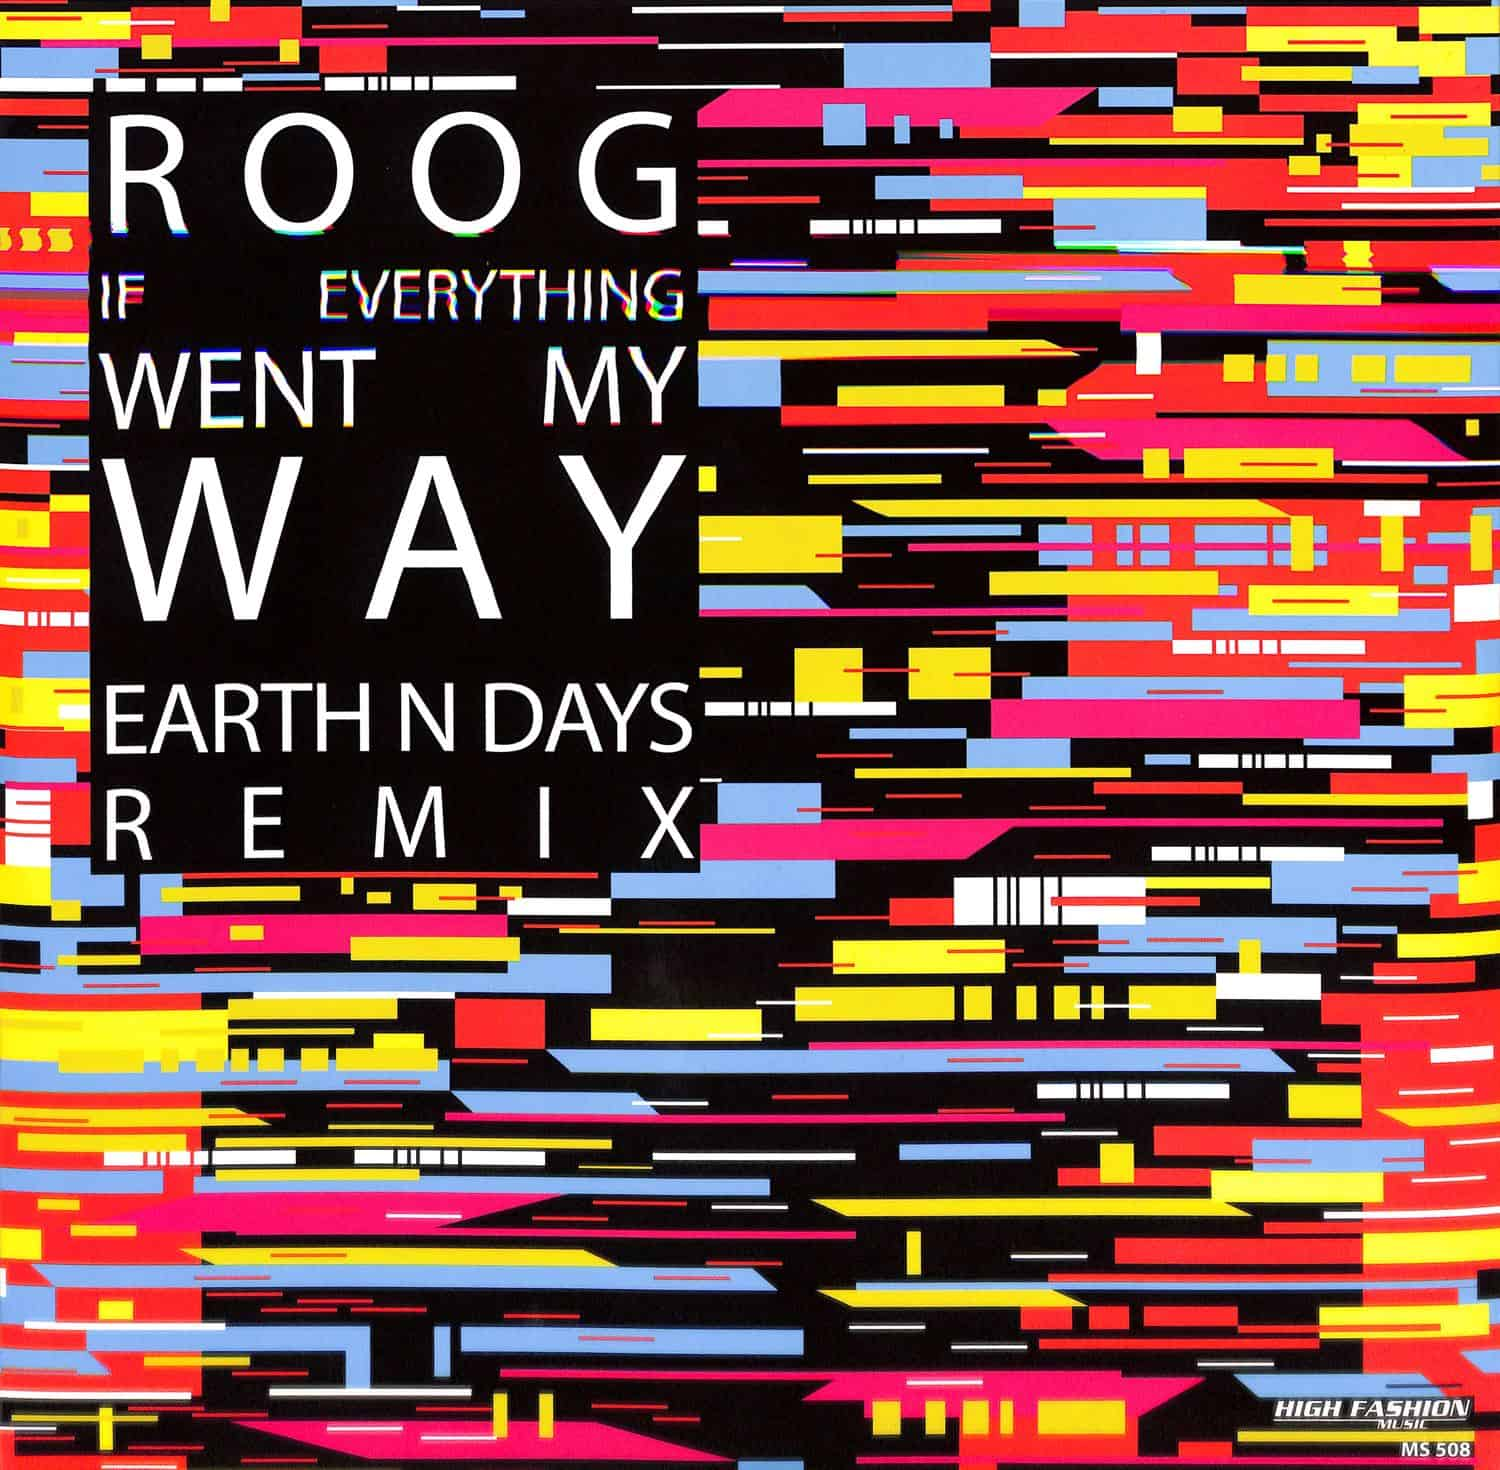 Roog - IF EVERYTHING WENT MY MAY